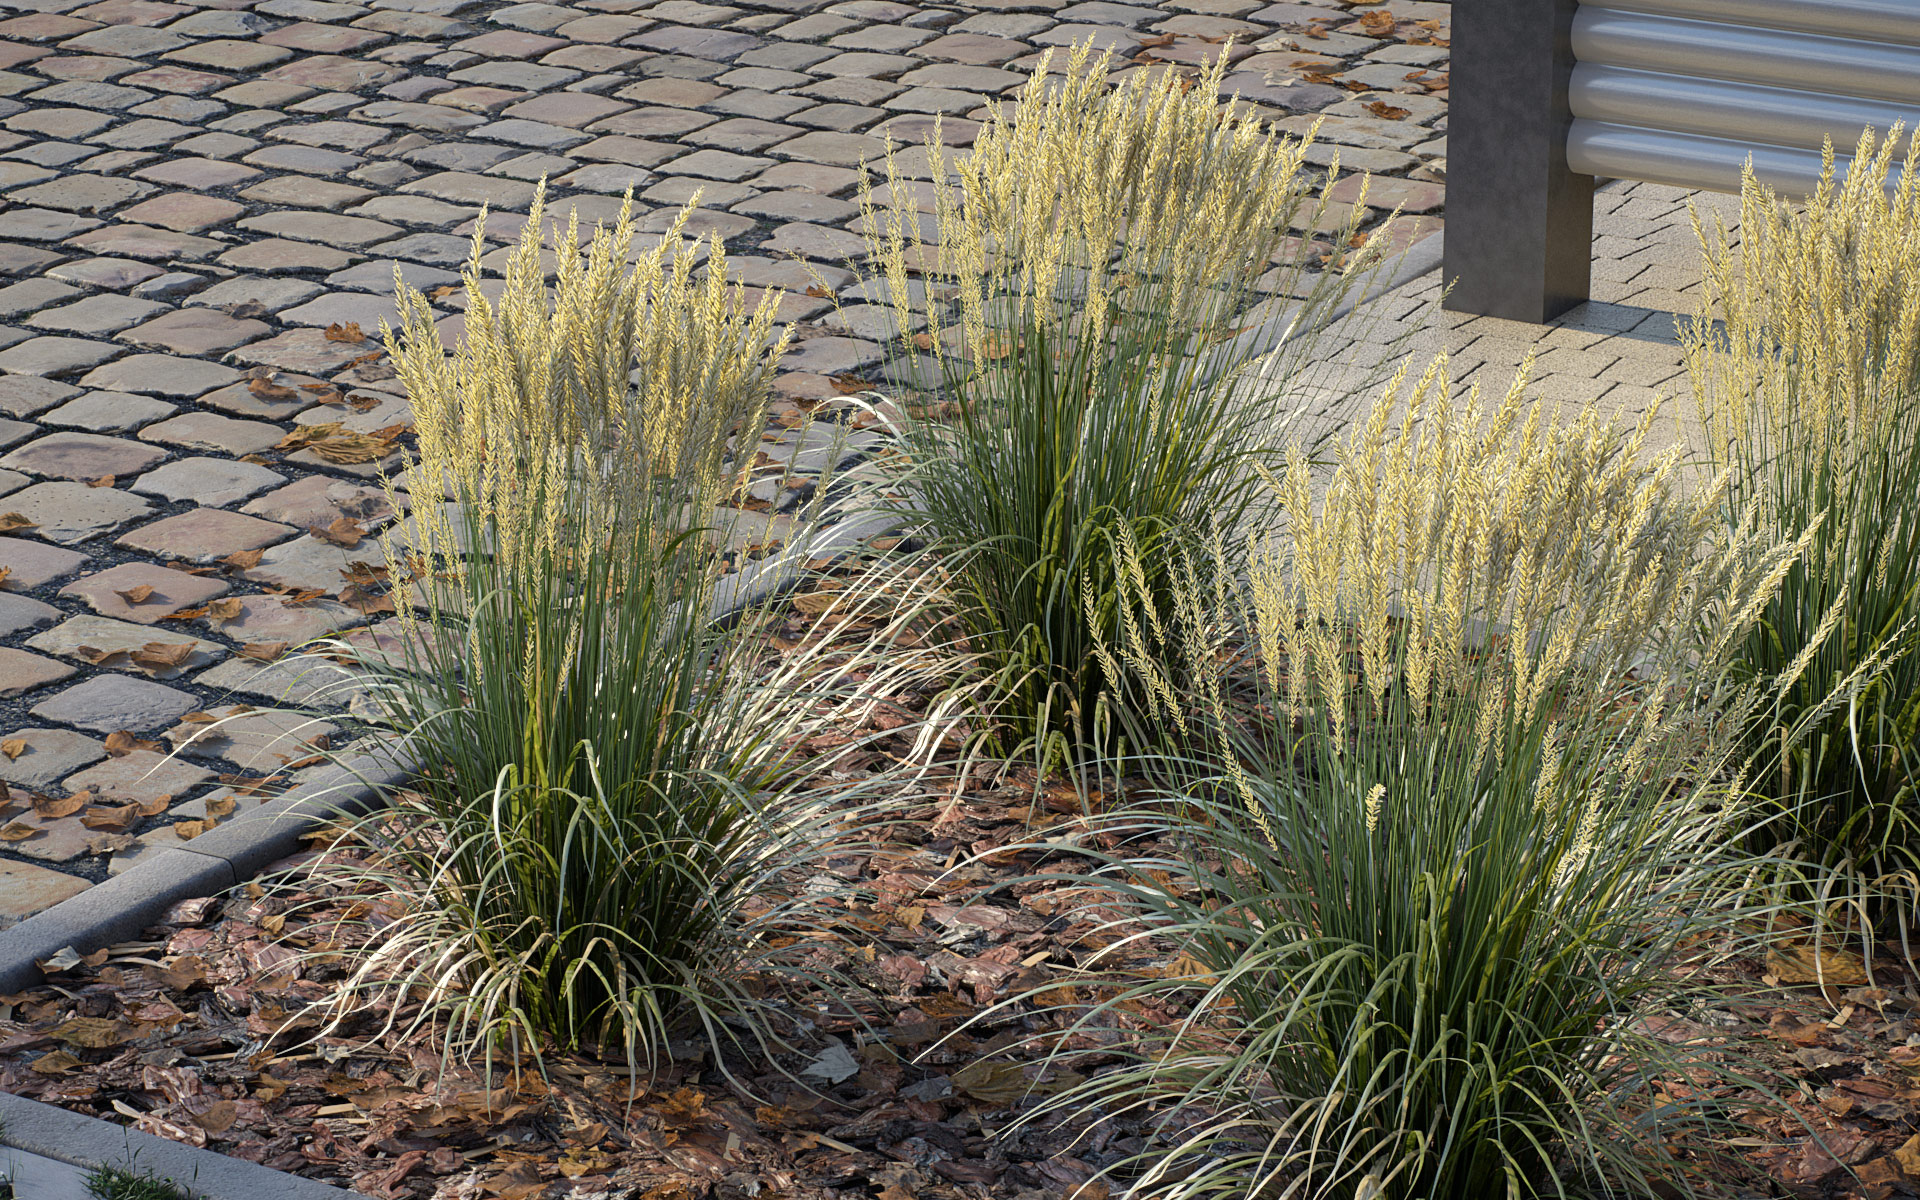 Feather Reed Grass 3D model example3 - 'Karl Foerster' - Calamagrostis acutiflora